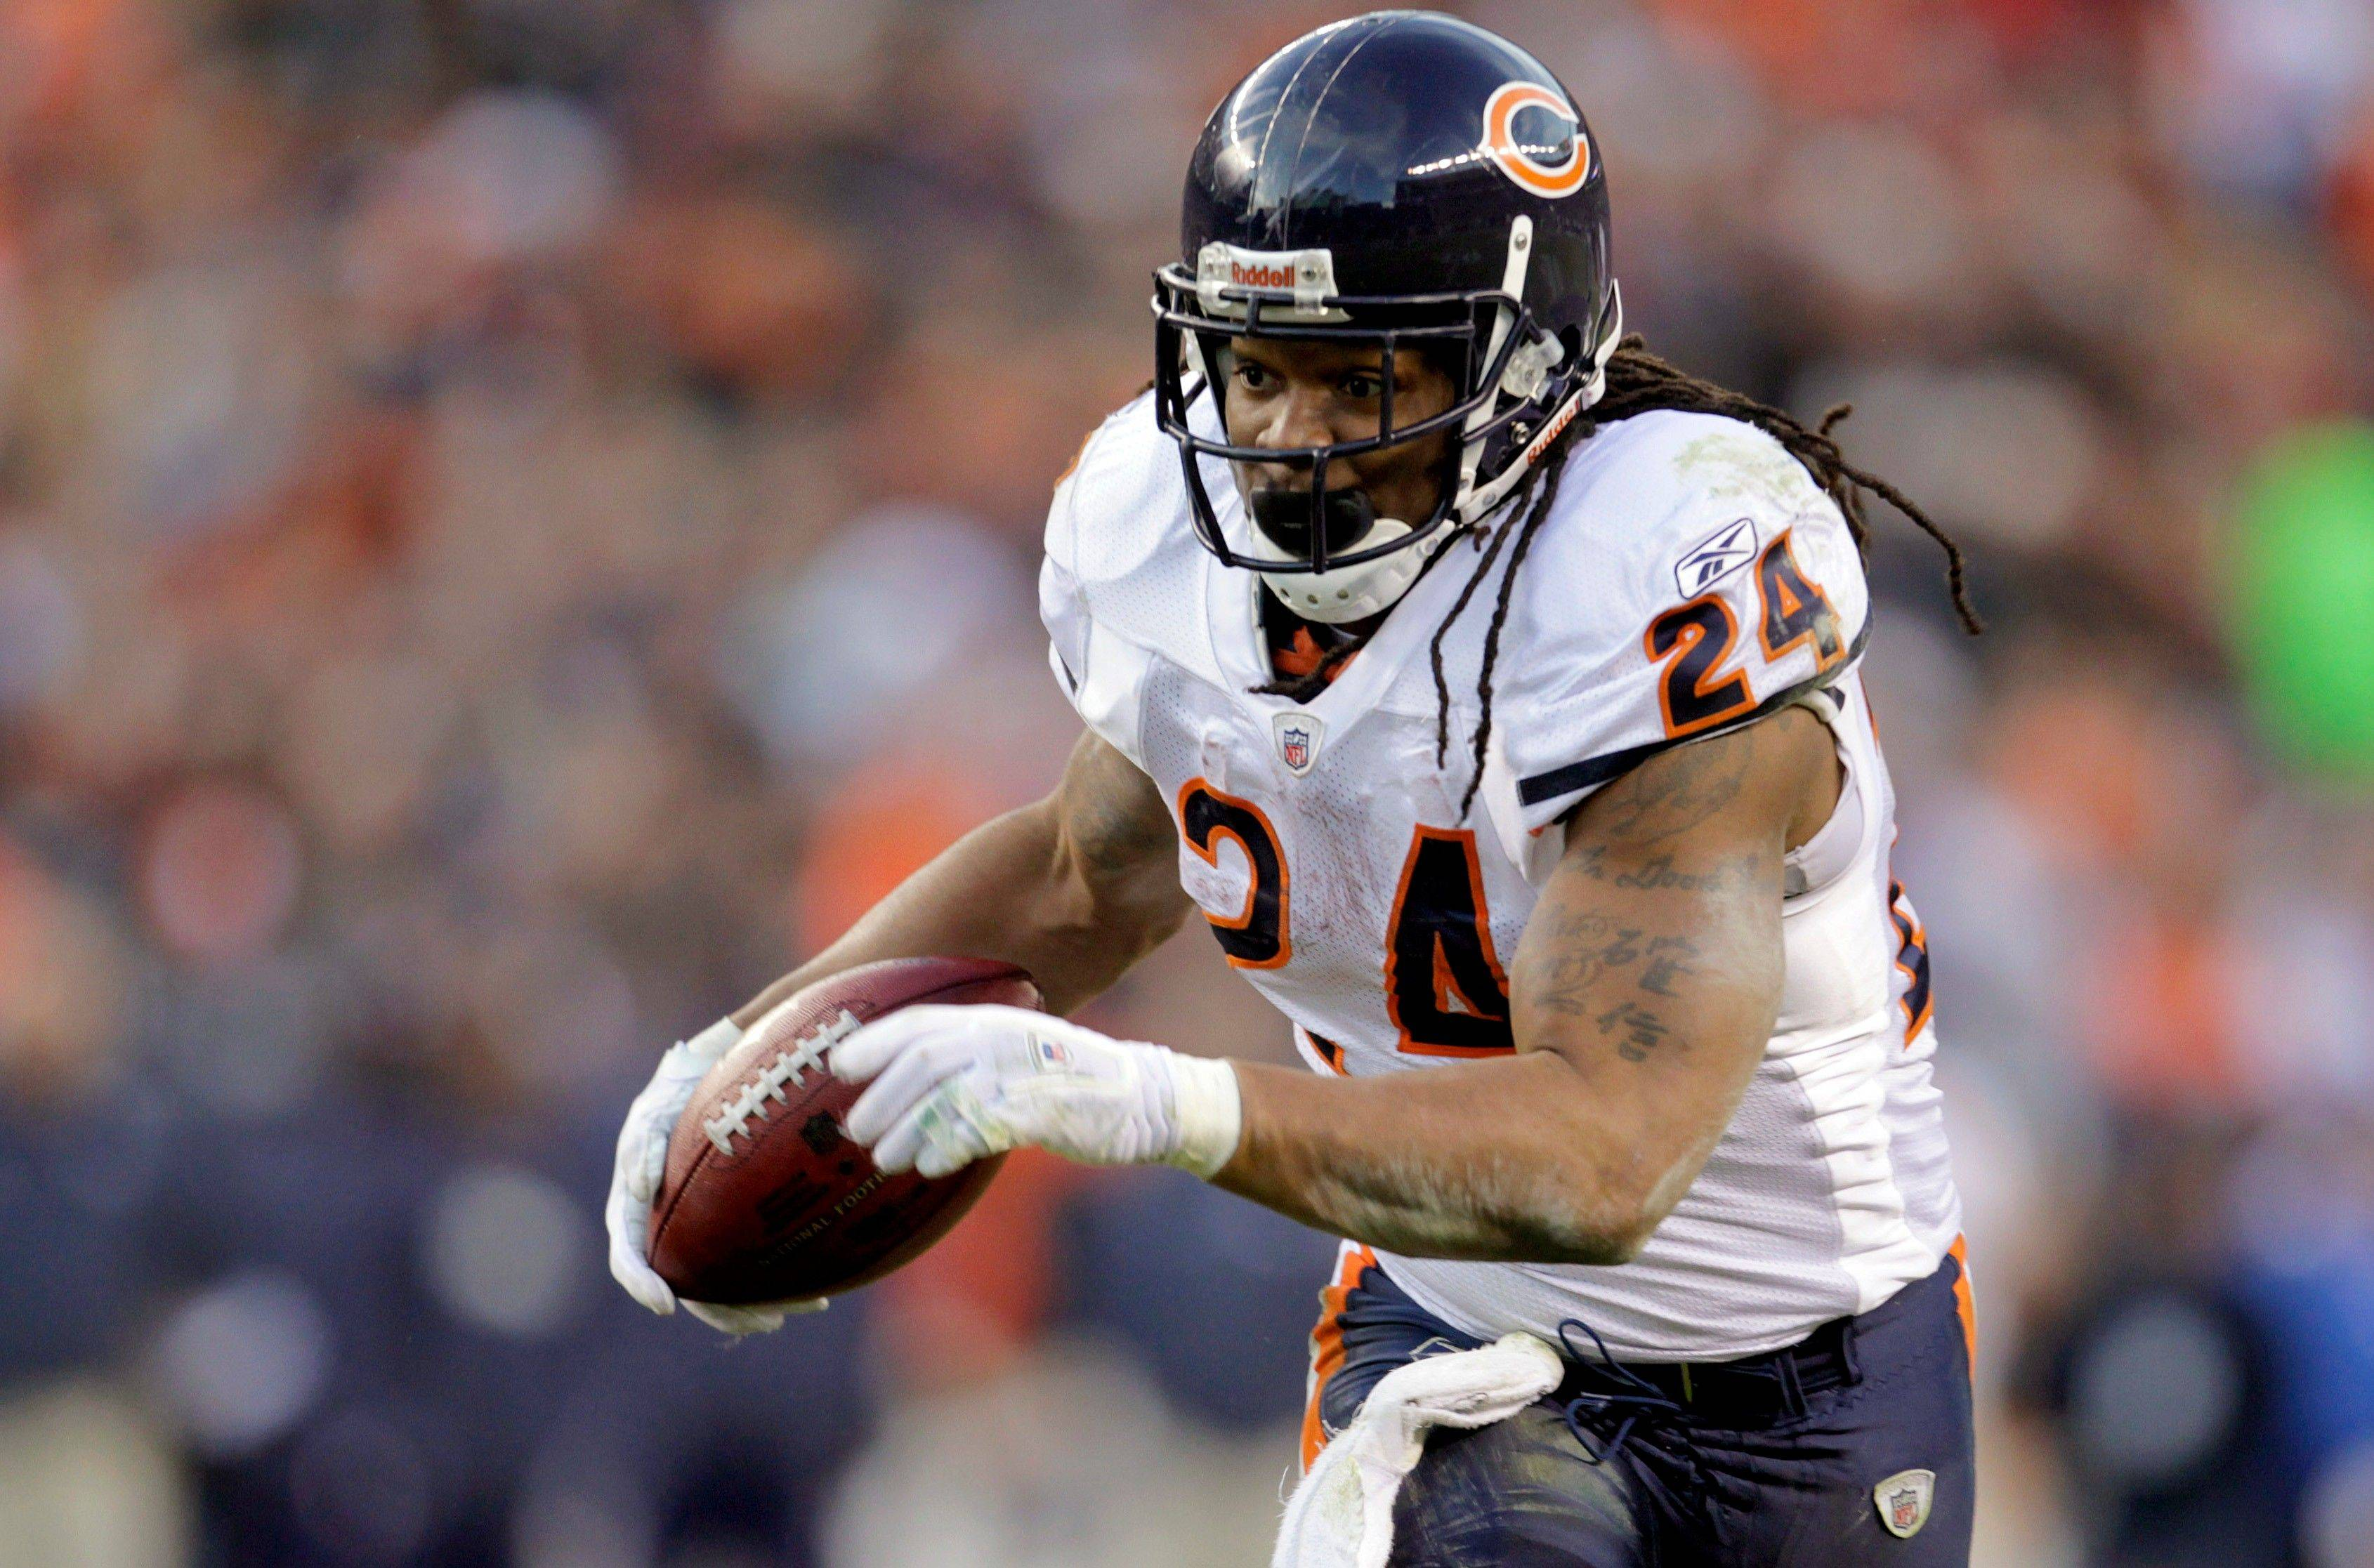 Chicago Bears running back Marion Barber (24) runs for a touchdown against the Denver Broncos in the third quarter.